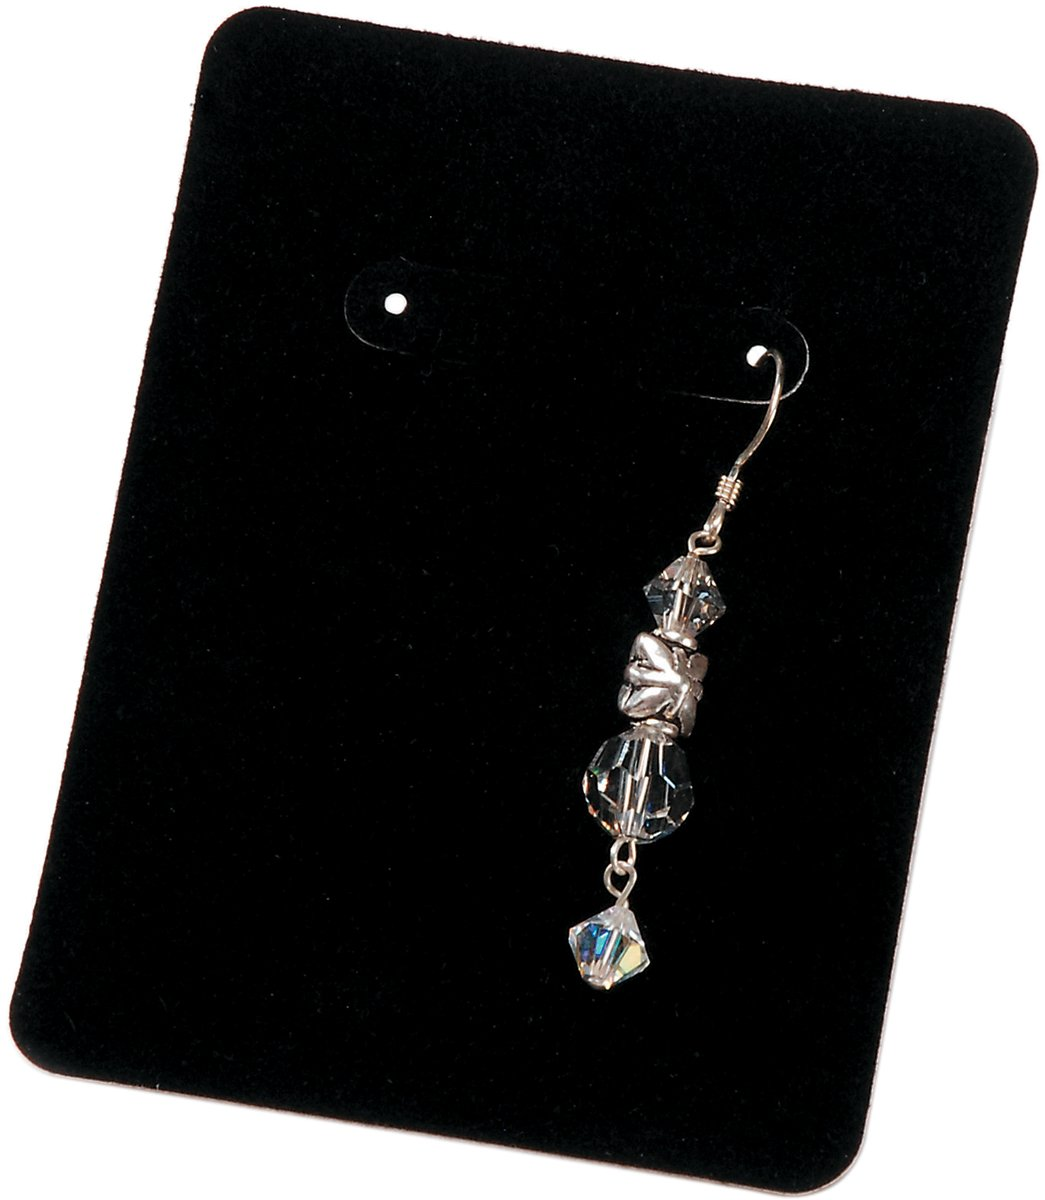 Darice Earring Display Cards, 3.25 by 2.5-Inch, Black Velvet, 30-Pack 1893-33